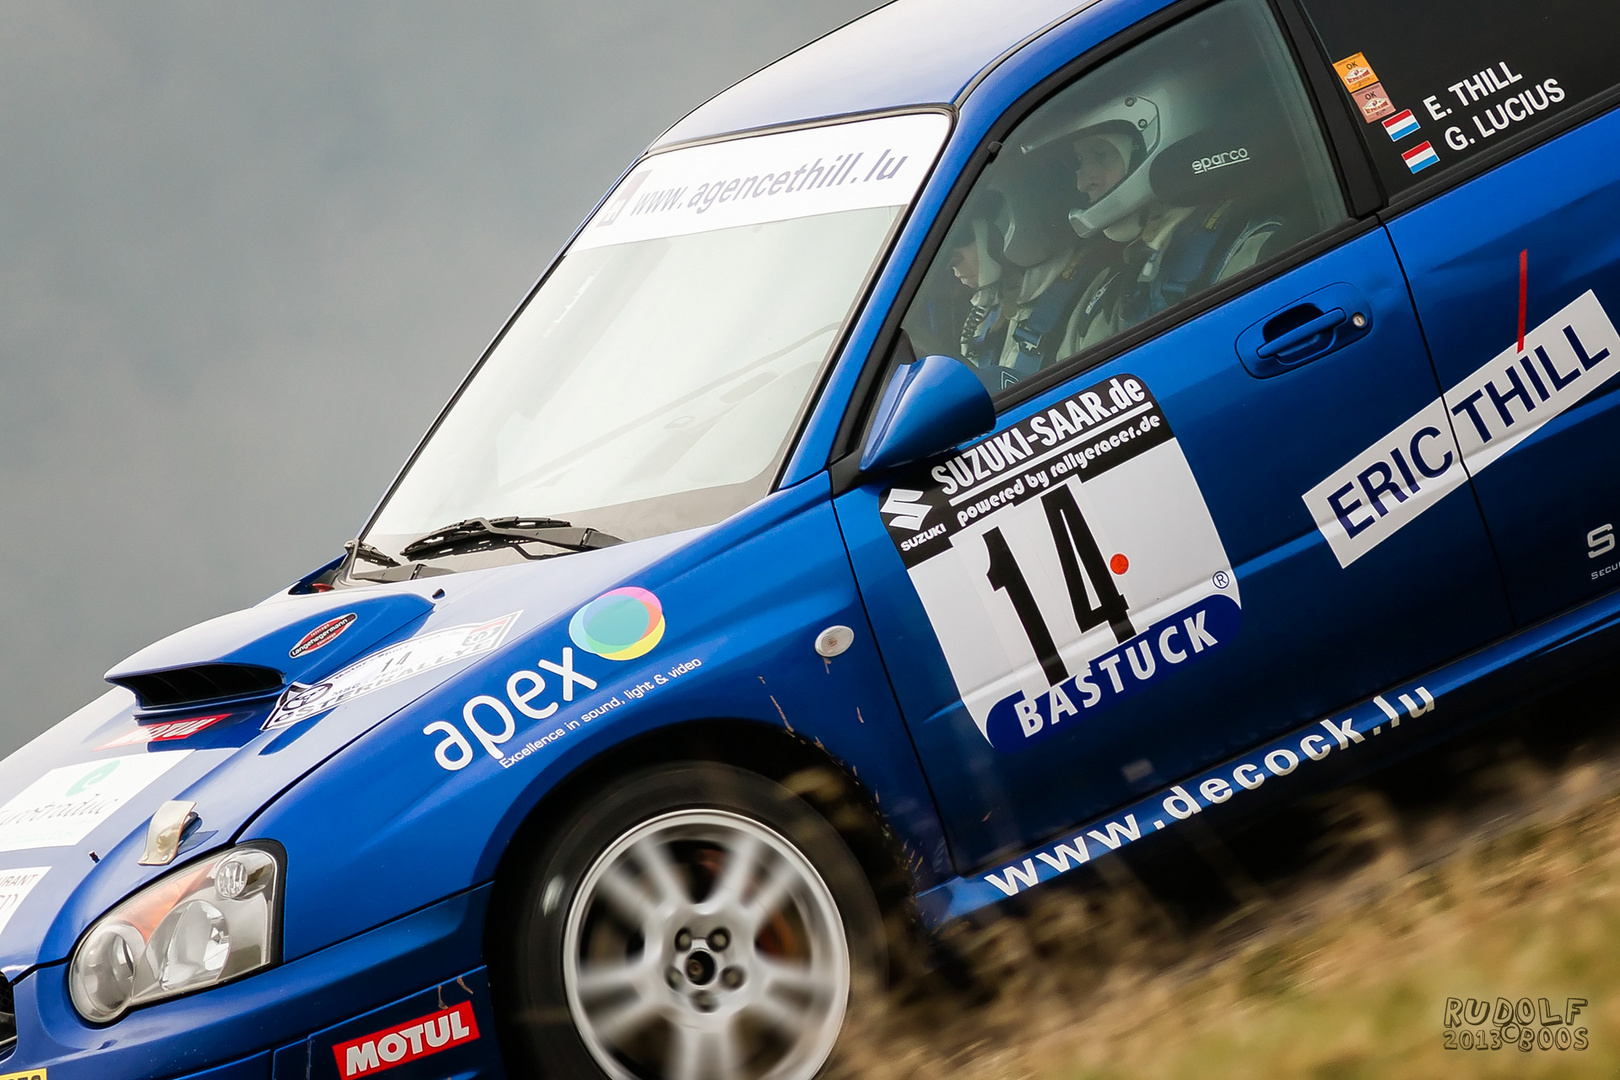 Oster-Rally Zerf 2013 02